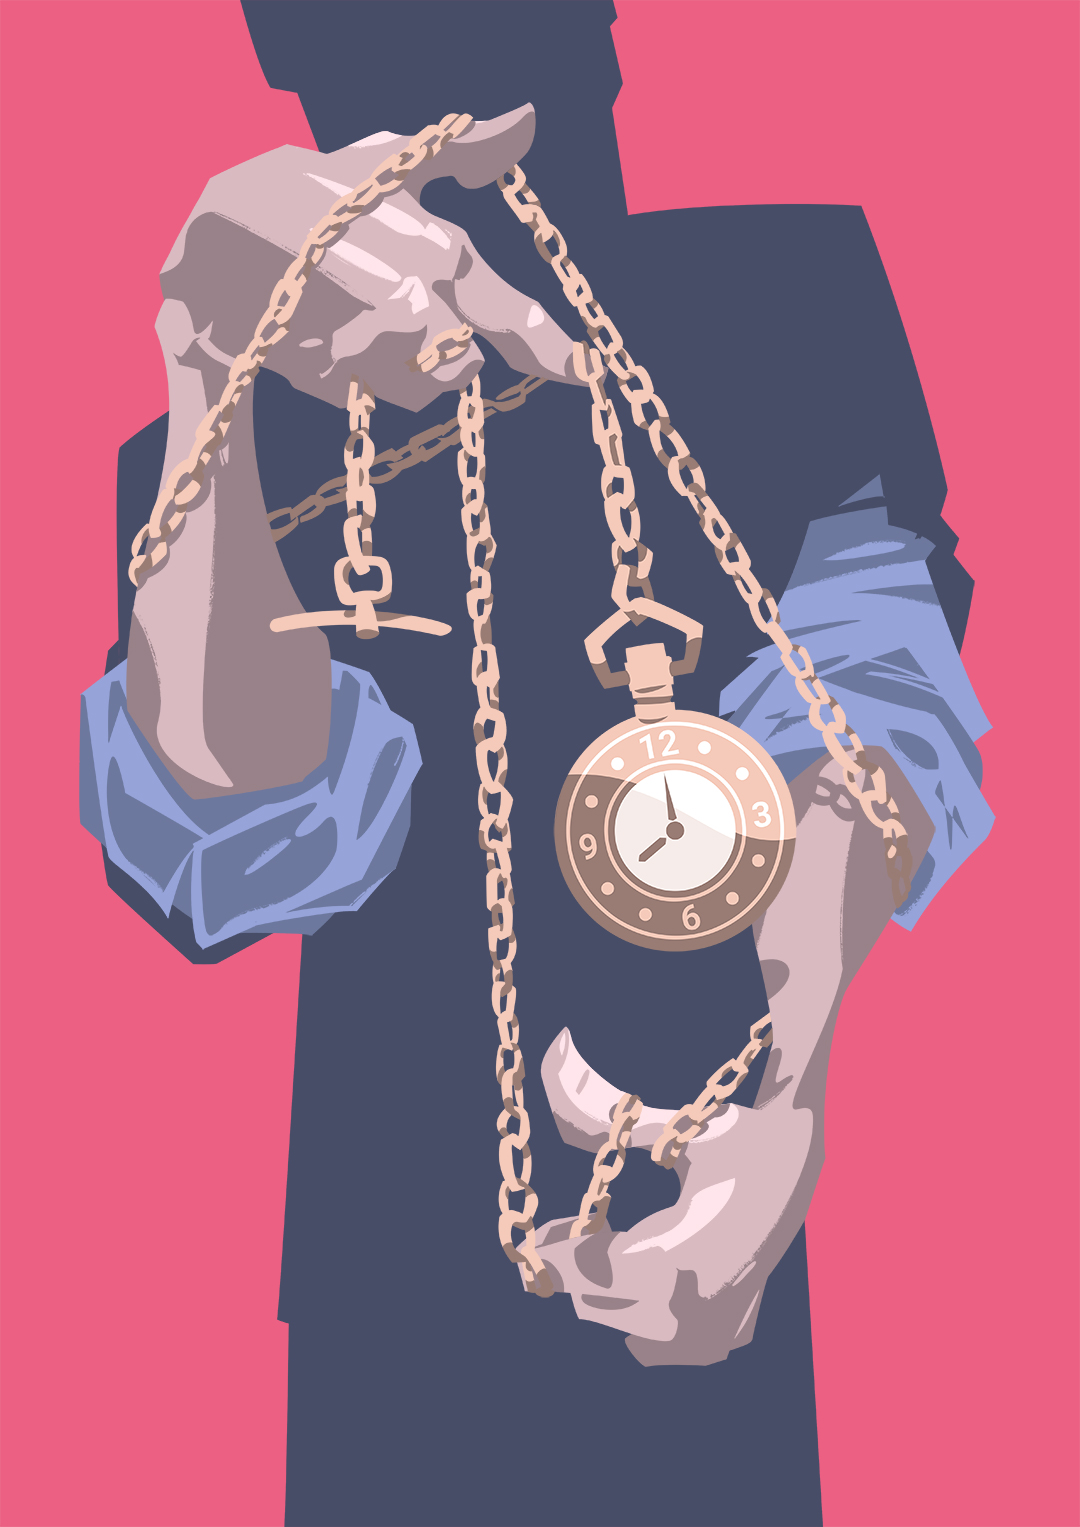 Entwined in its chain, of a pocket watch is swung by a shadowy figure.